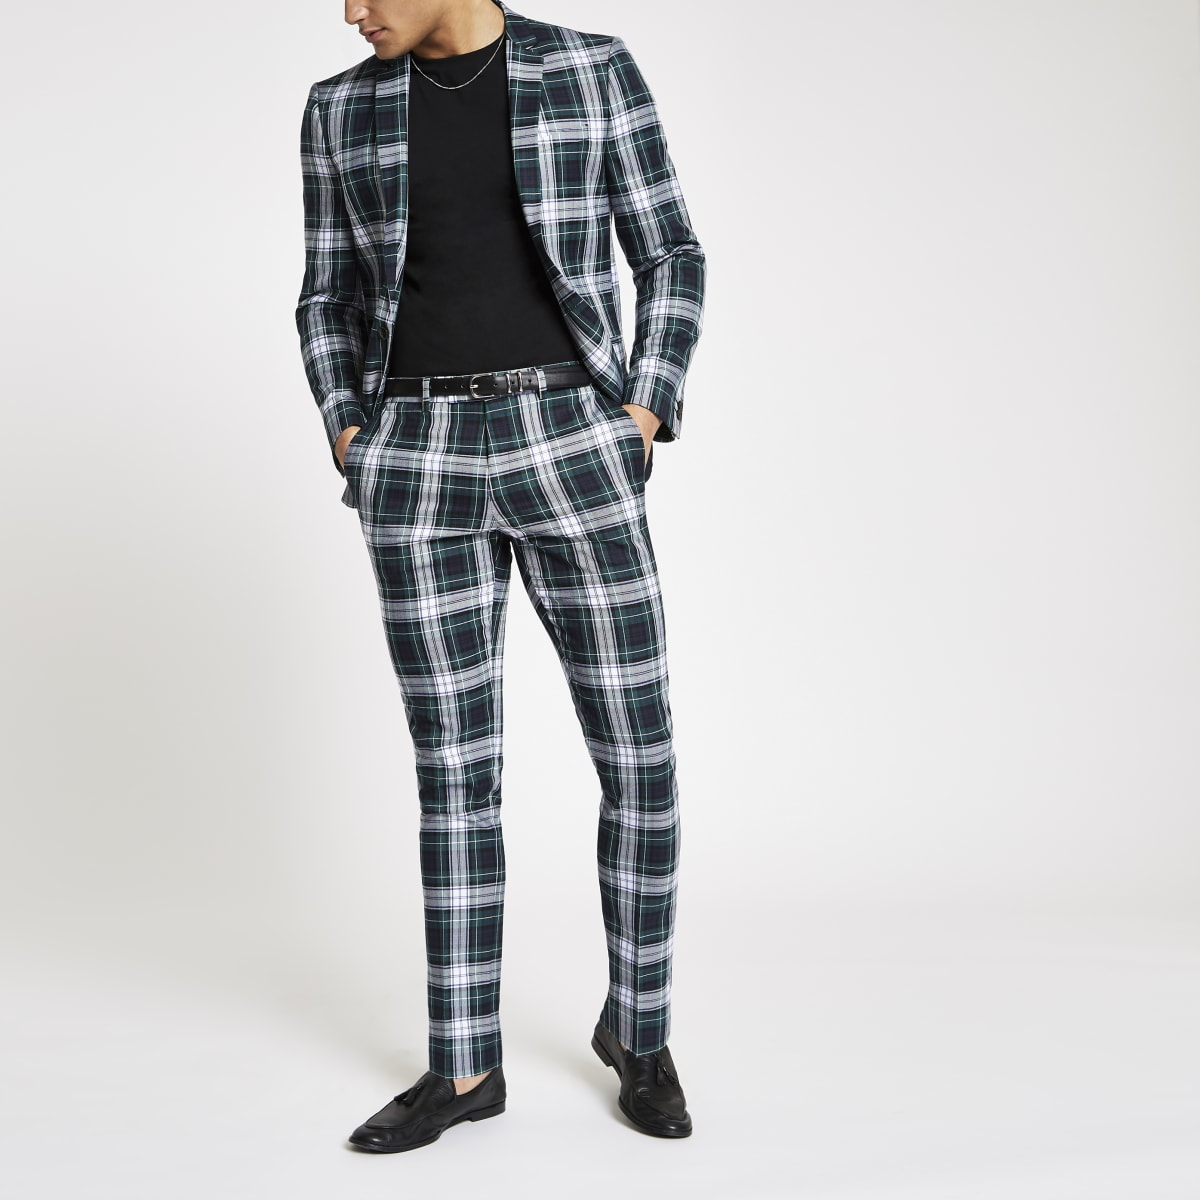 Green tartan super skinny fit suit trousers